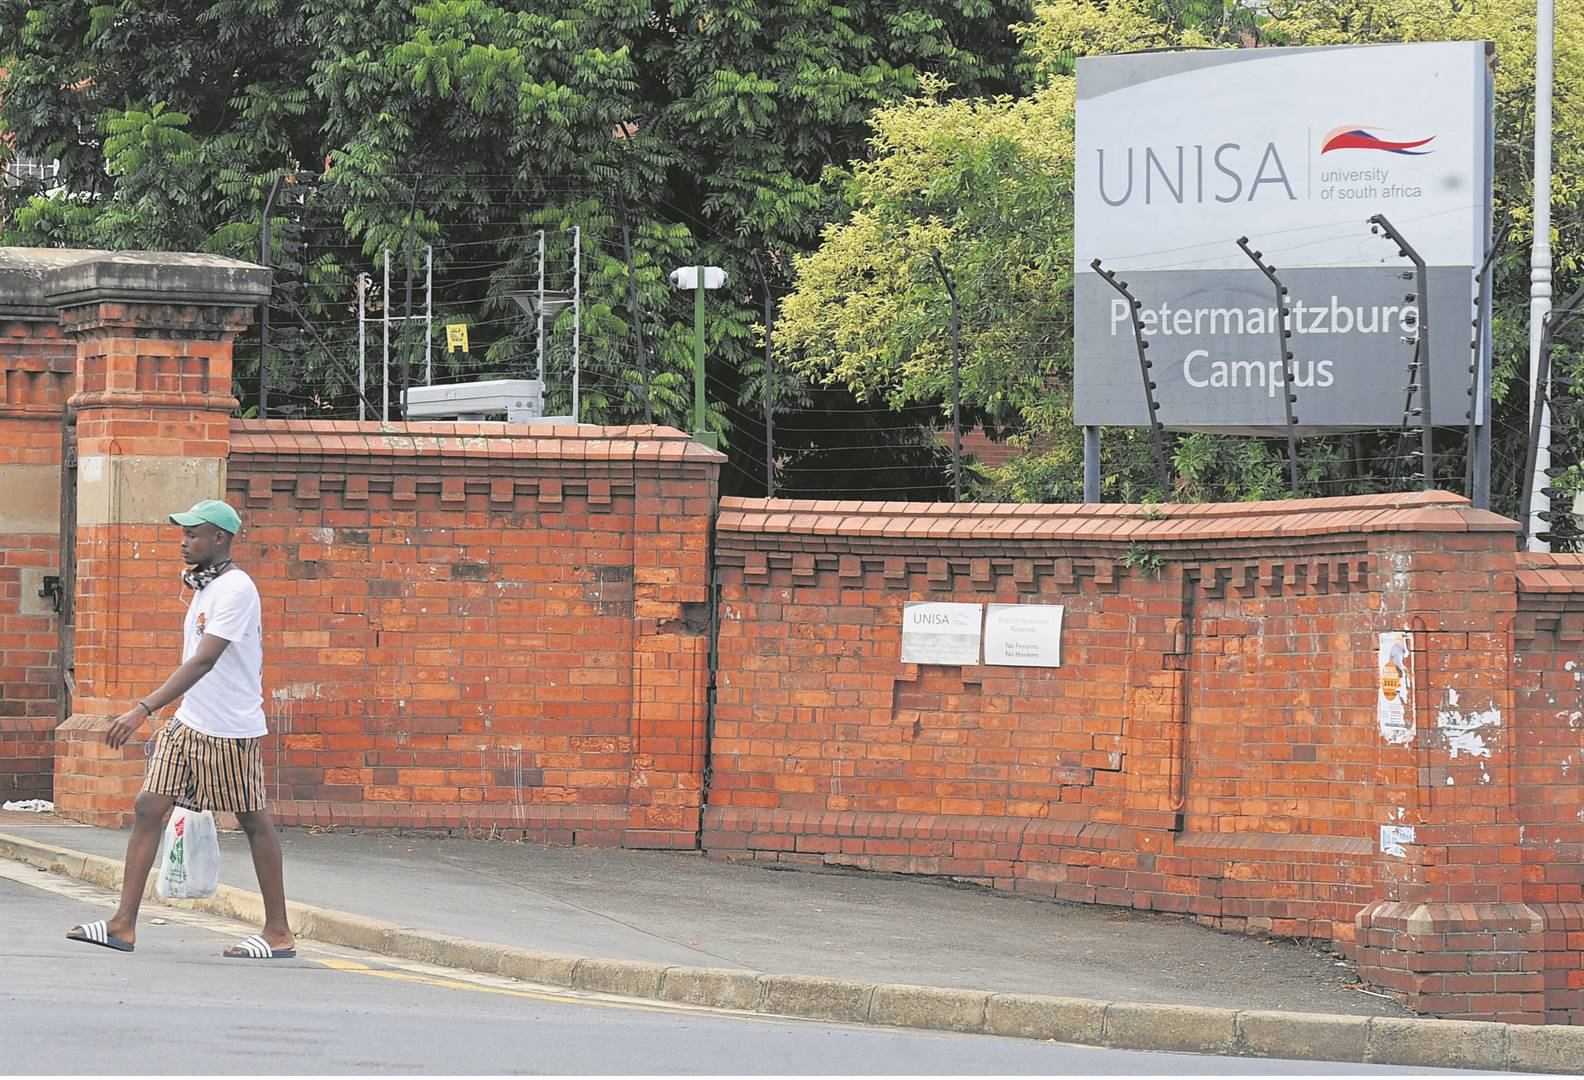 Unisa recently made changes to their academic year, sparking fears among many students regarding their workload.